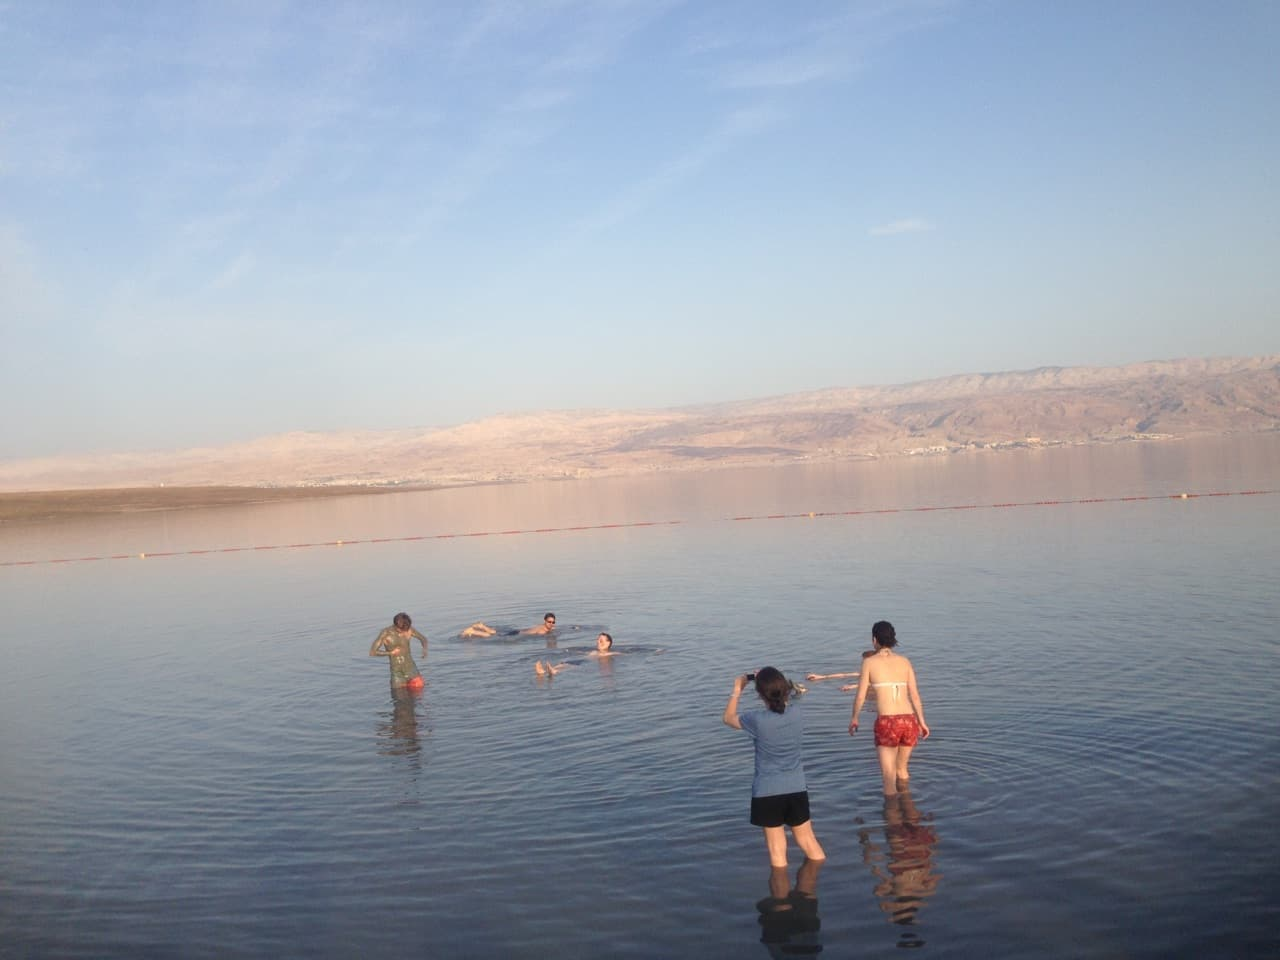 Floating on Salt (Dead-Sea 2017)